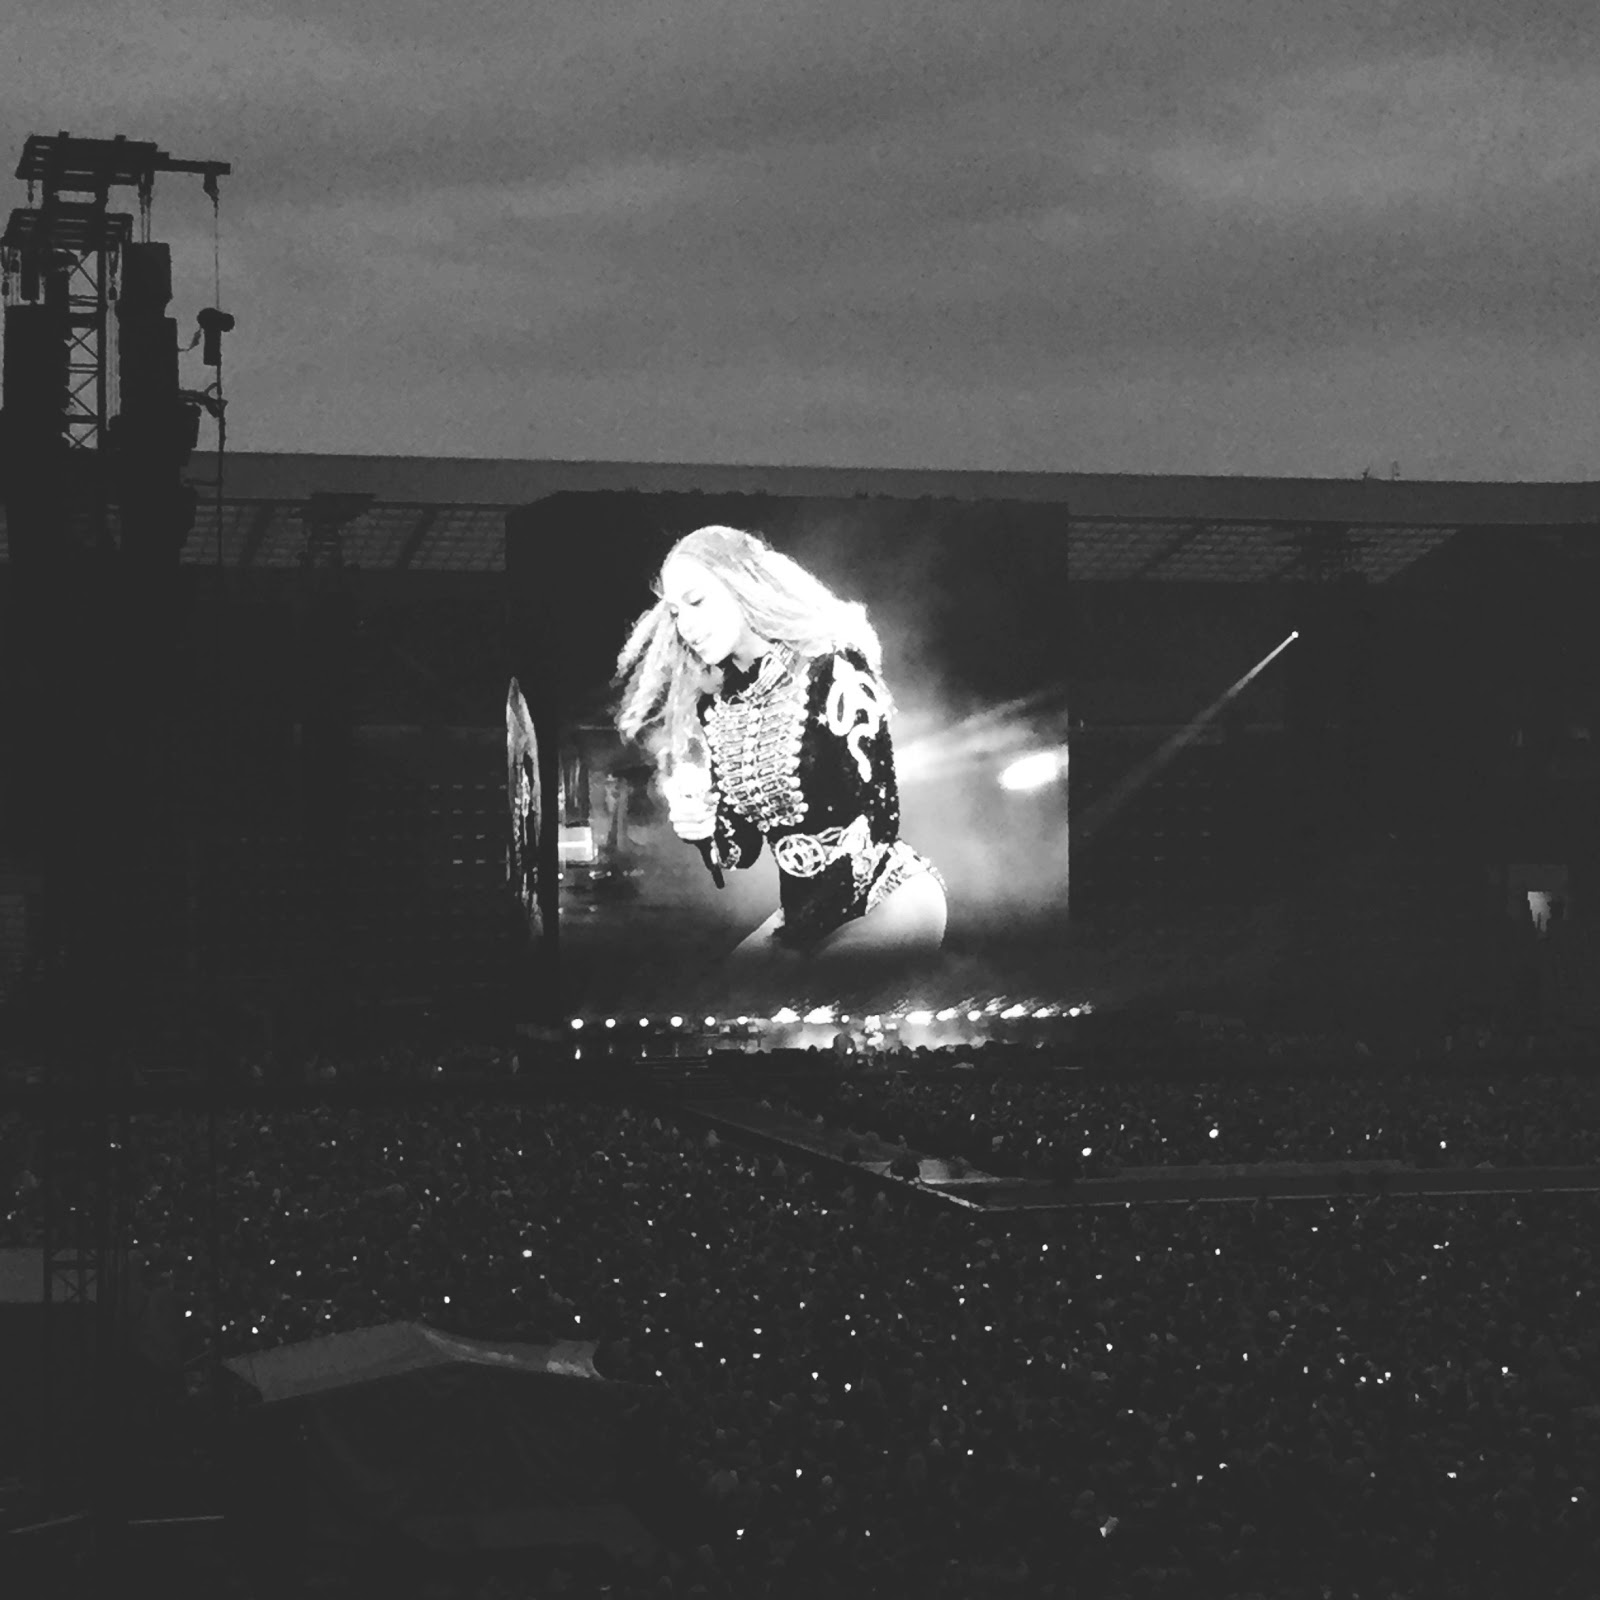 beyonce formation world tour at the stadium of light in sunderland